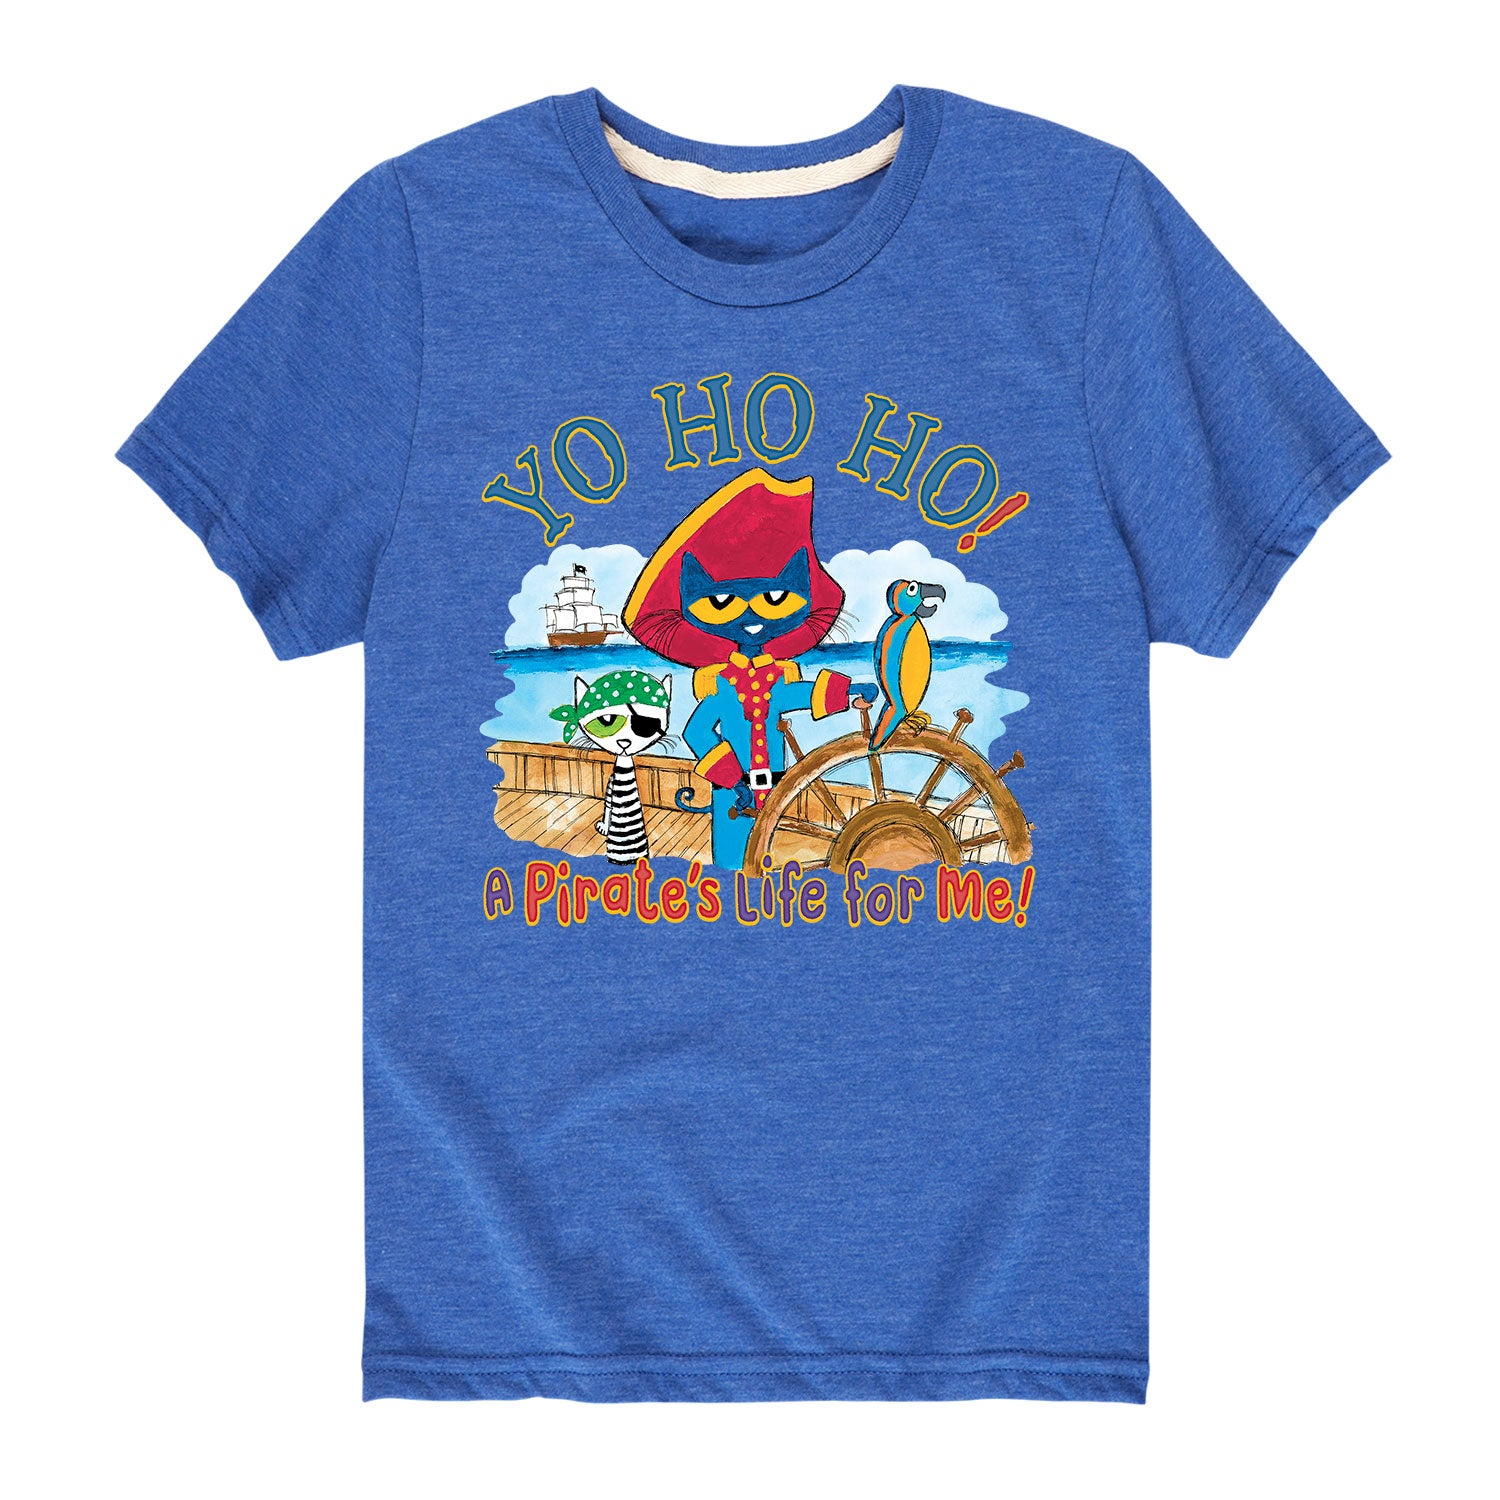 Pete The Cat Pirate Yo Ho Ho - Toddler Short Sleeve T-Shirt